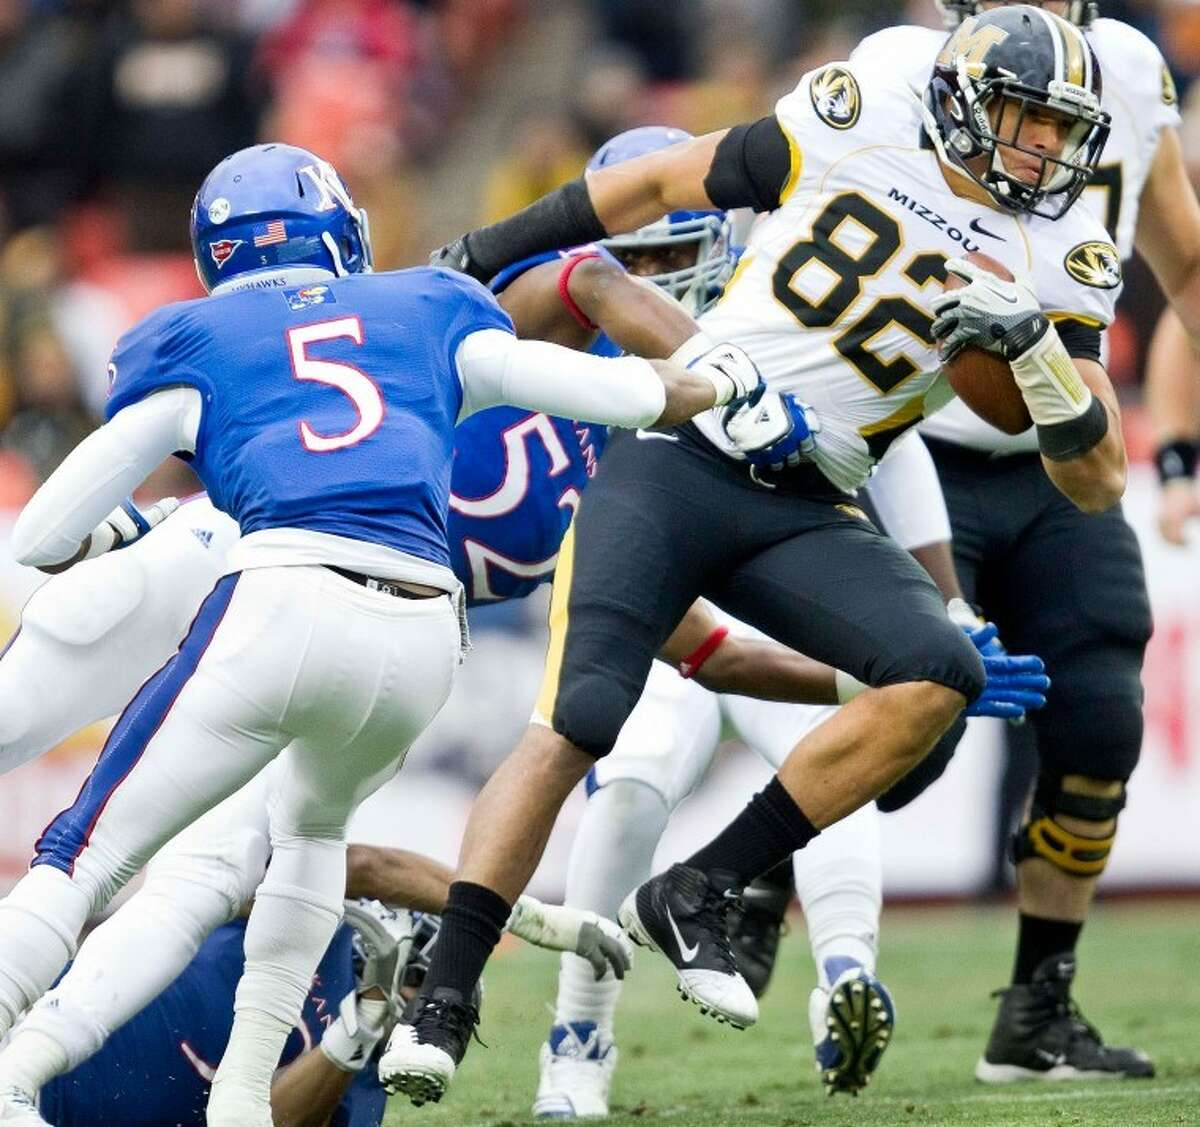 Michael Egnew (82) of Missouri battles for extra yards against Greg Brown (5) and Steven Johnson (52) of Kansas on Nov. 26, in Kansas City, Mo. Egnew was named to the All-Big 12 first team for the second year in a row.